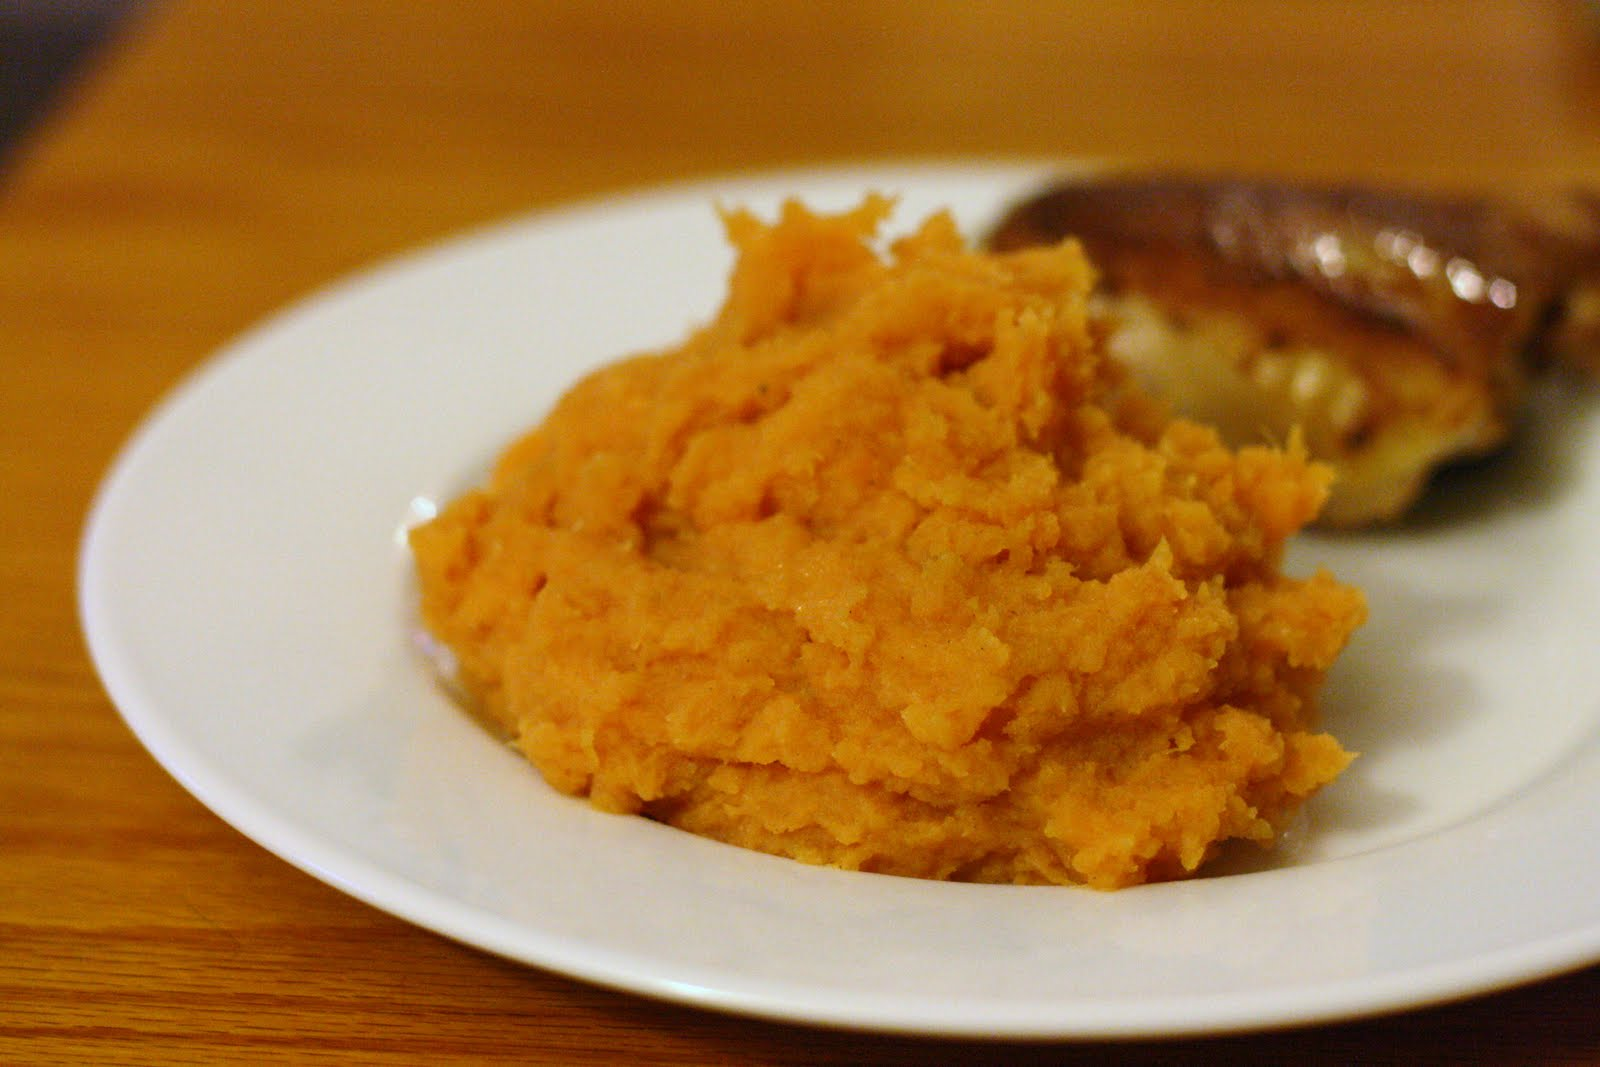 ... mashed sweet potatoes over mashed potatoes if i m making them at home